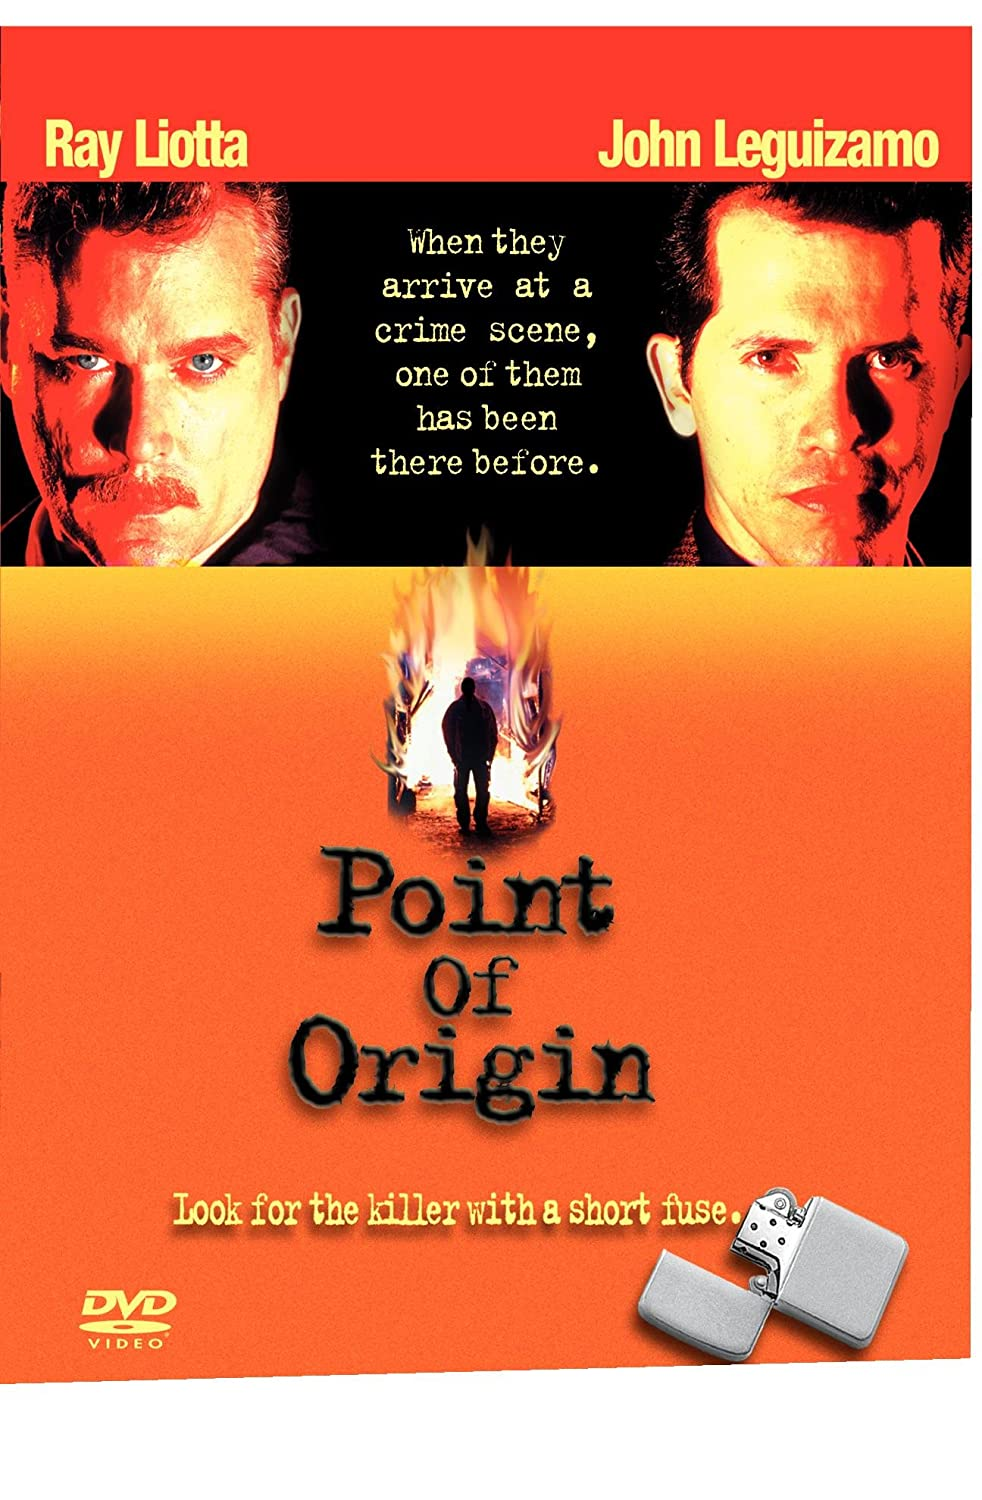 Amazon.com: Point of Origin: Ray Liotta, John Leguizamo ...